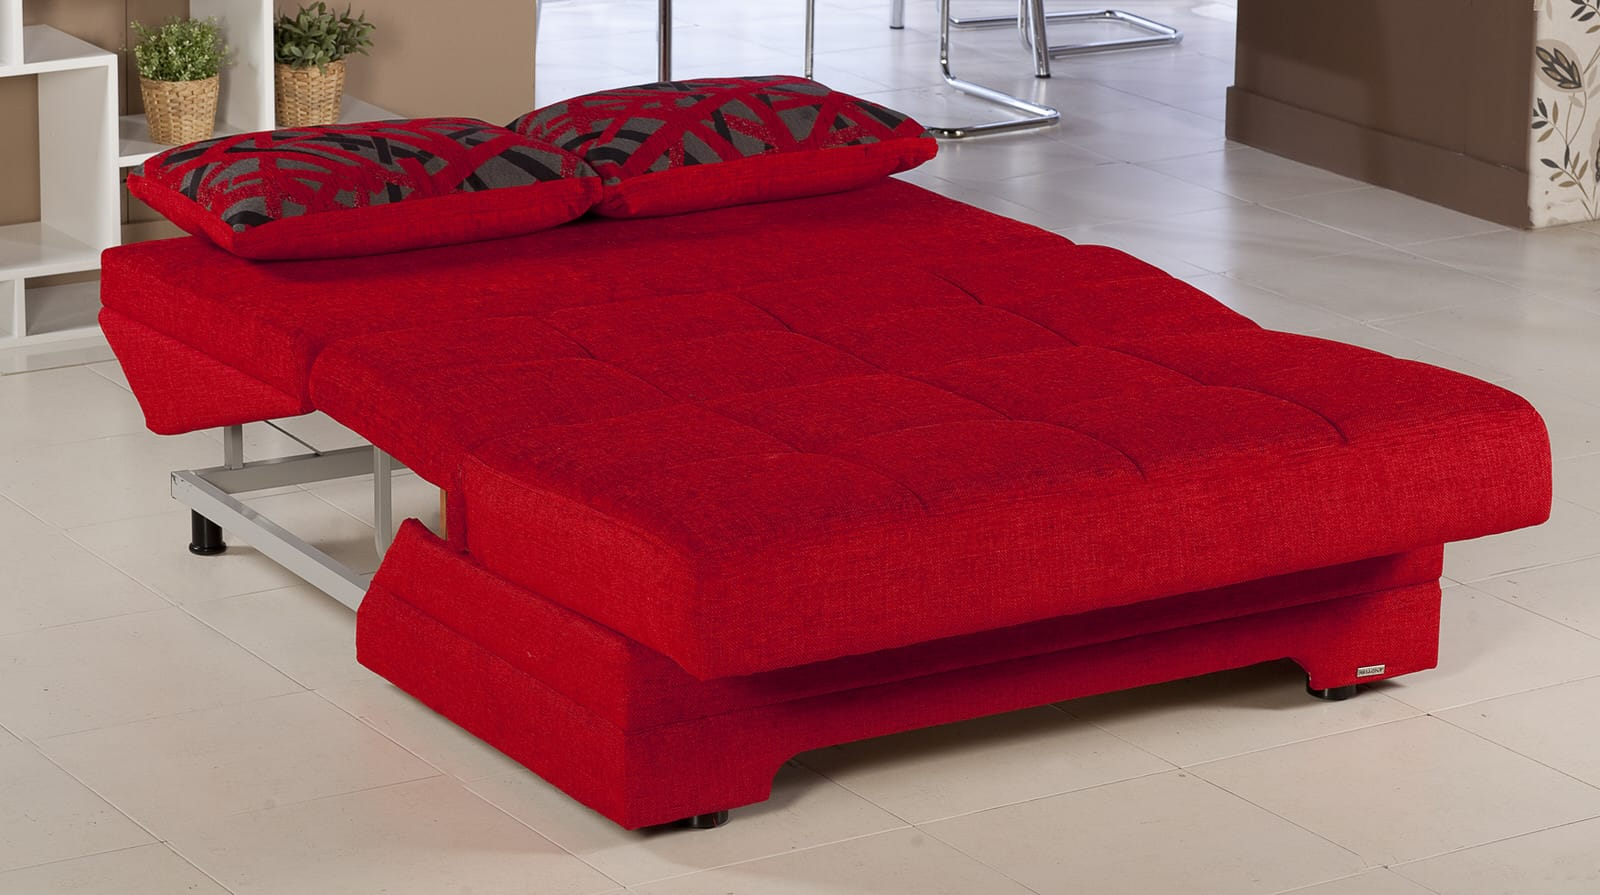 Twist story red loveseat sleeper by sunset Red sofas and loveseats